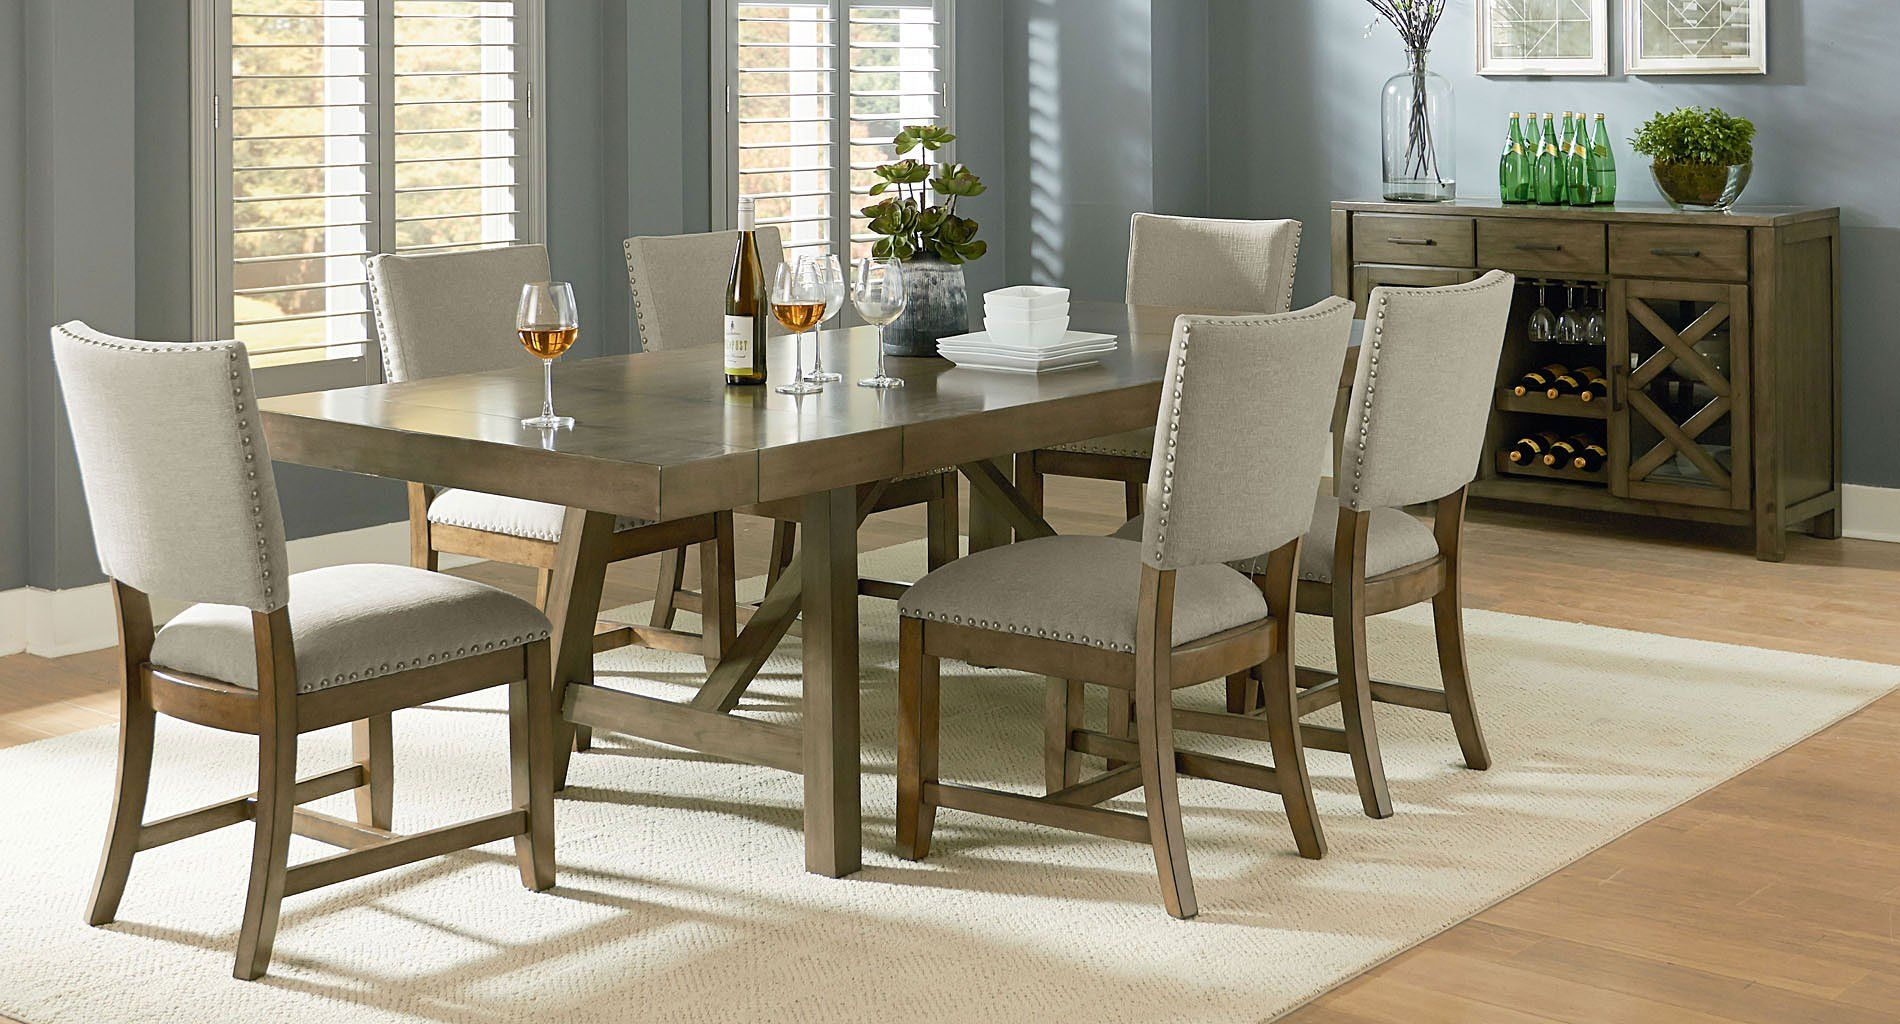 omaha dining room set w upholstered chairs grey